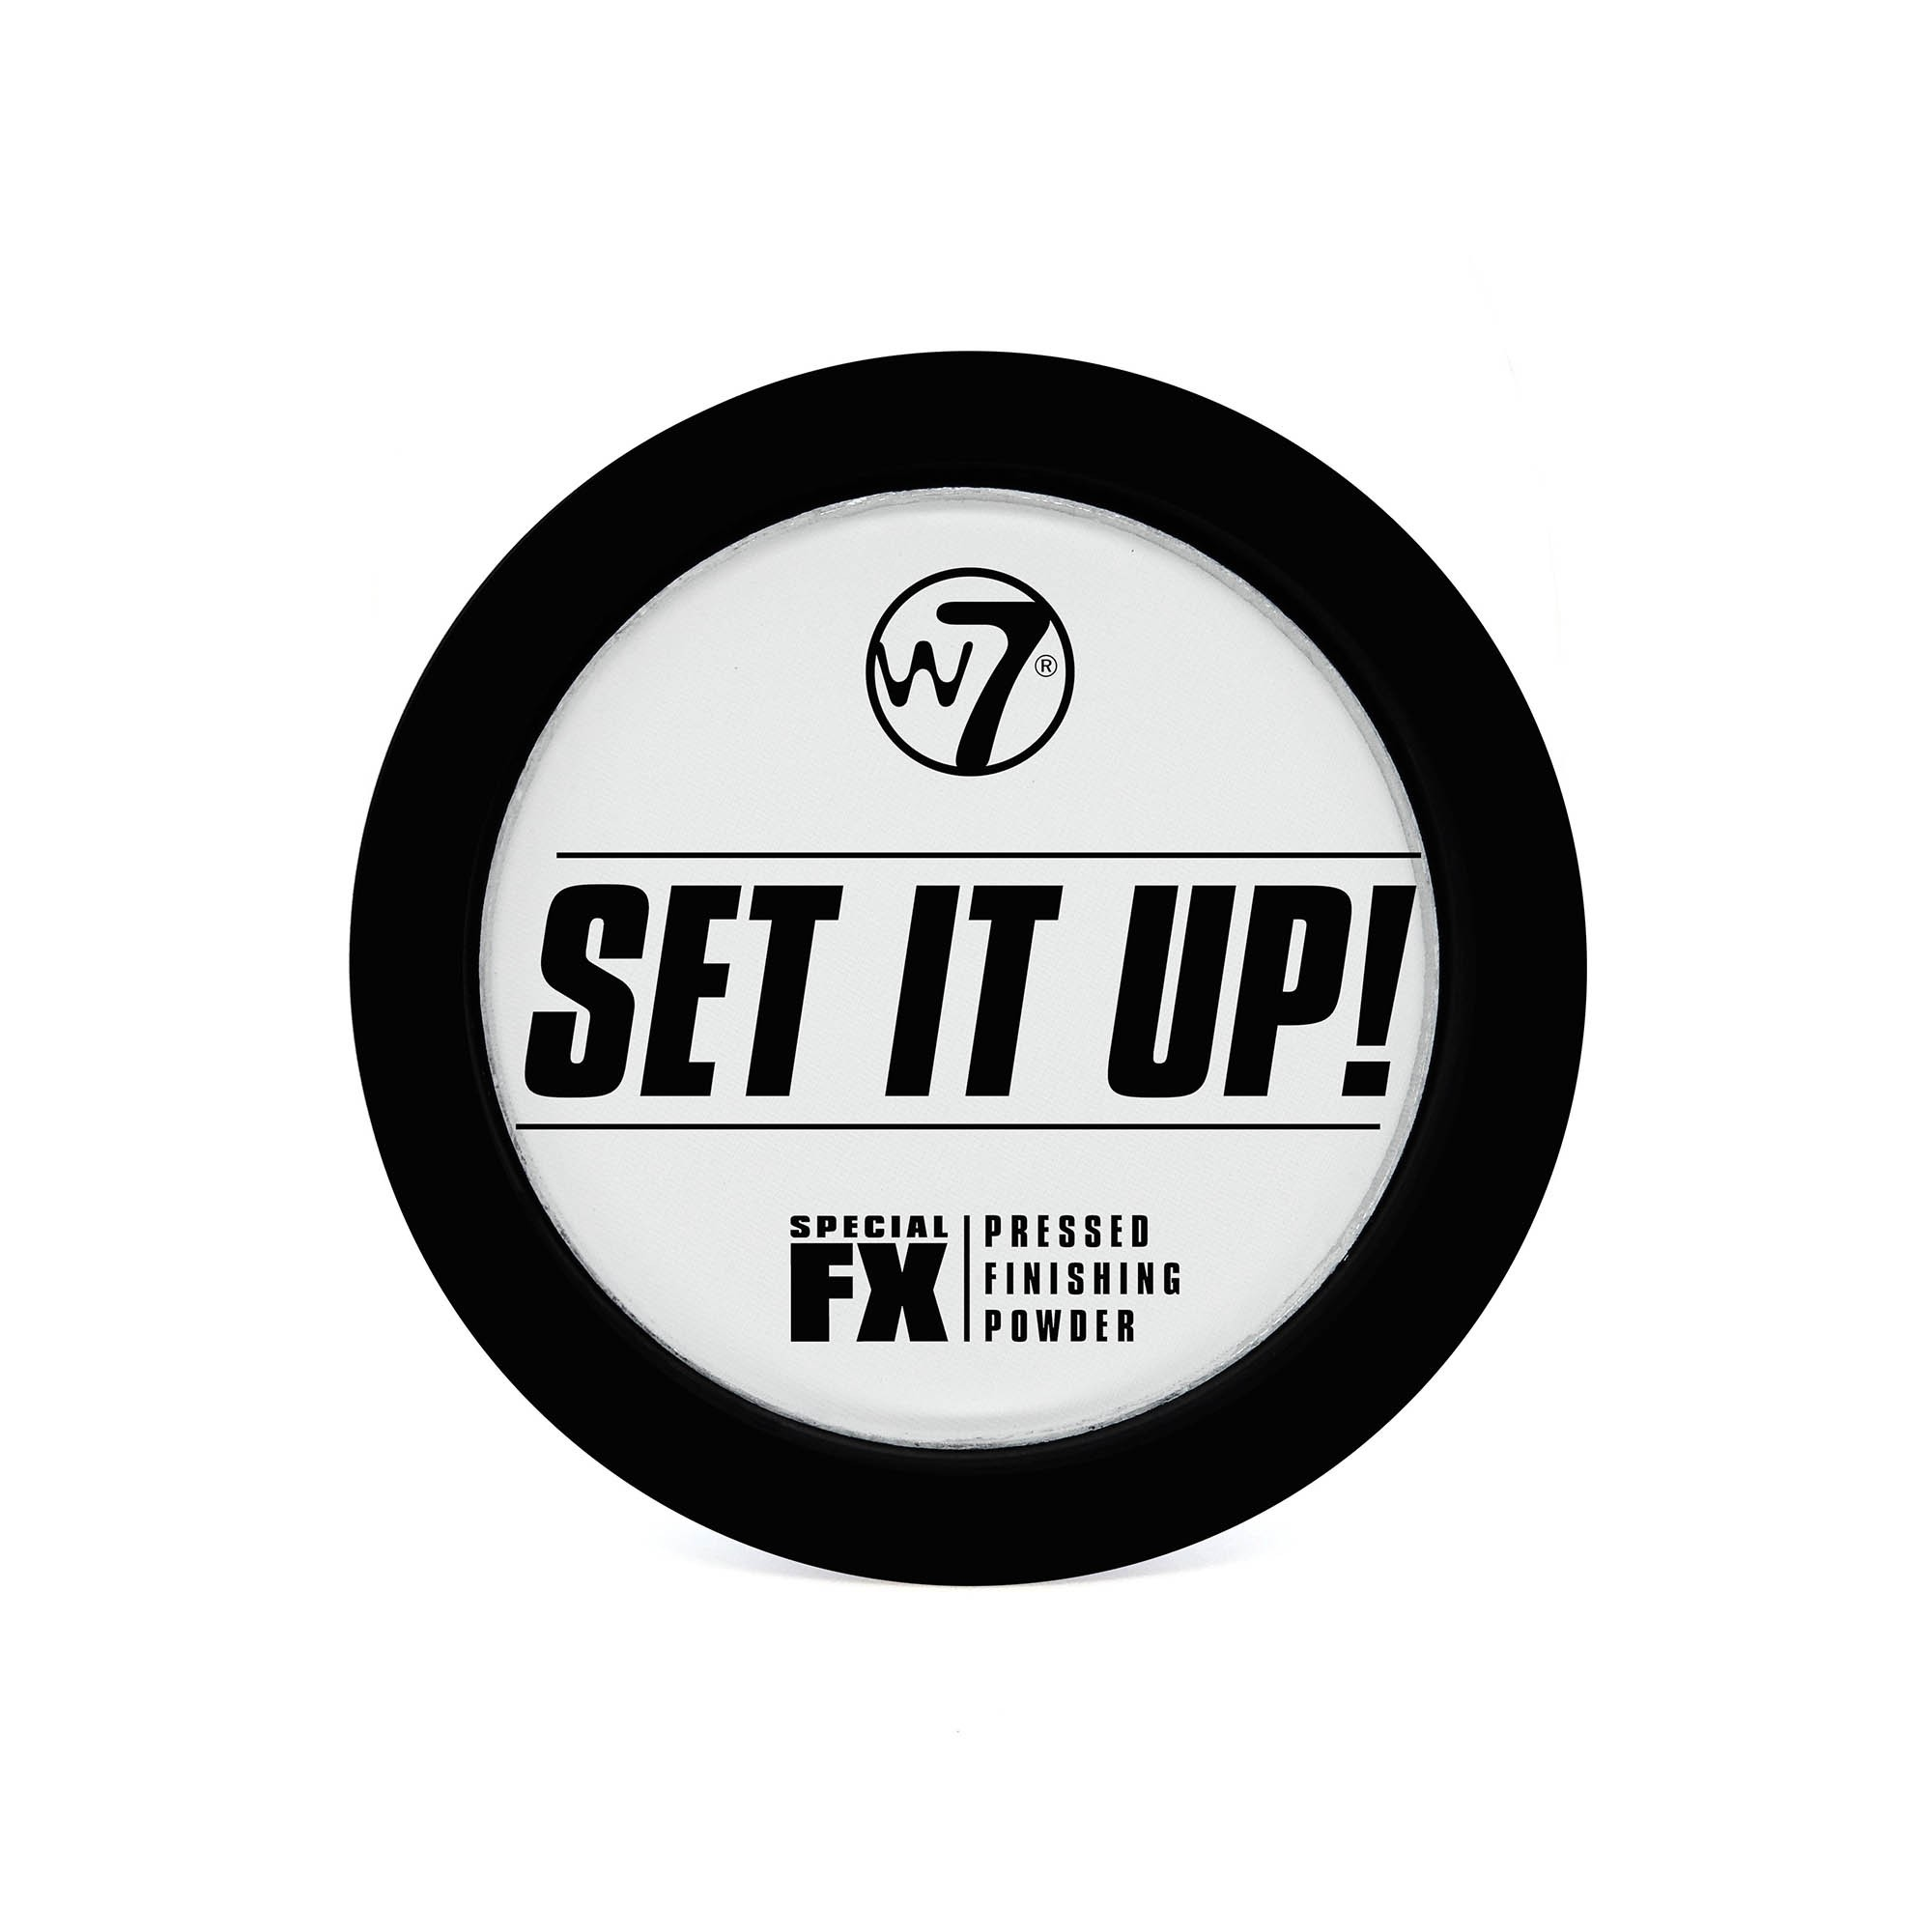 Puder - Set It Up! Special FX Pressed Finishing Powder